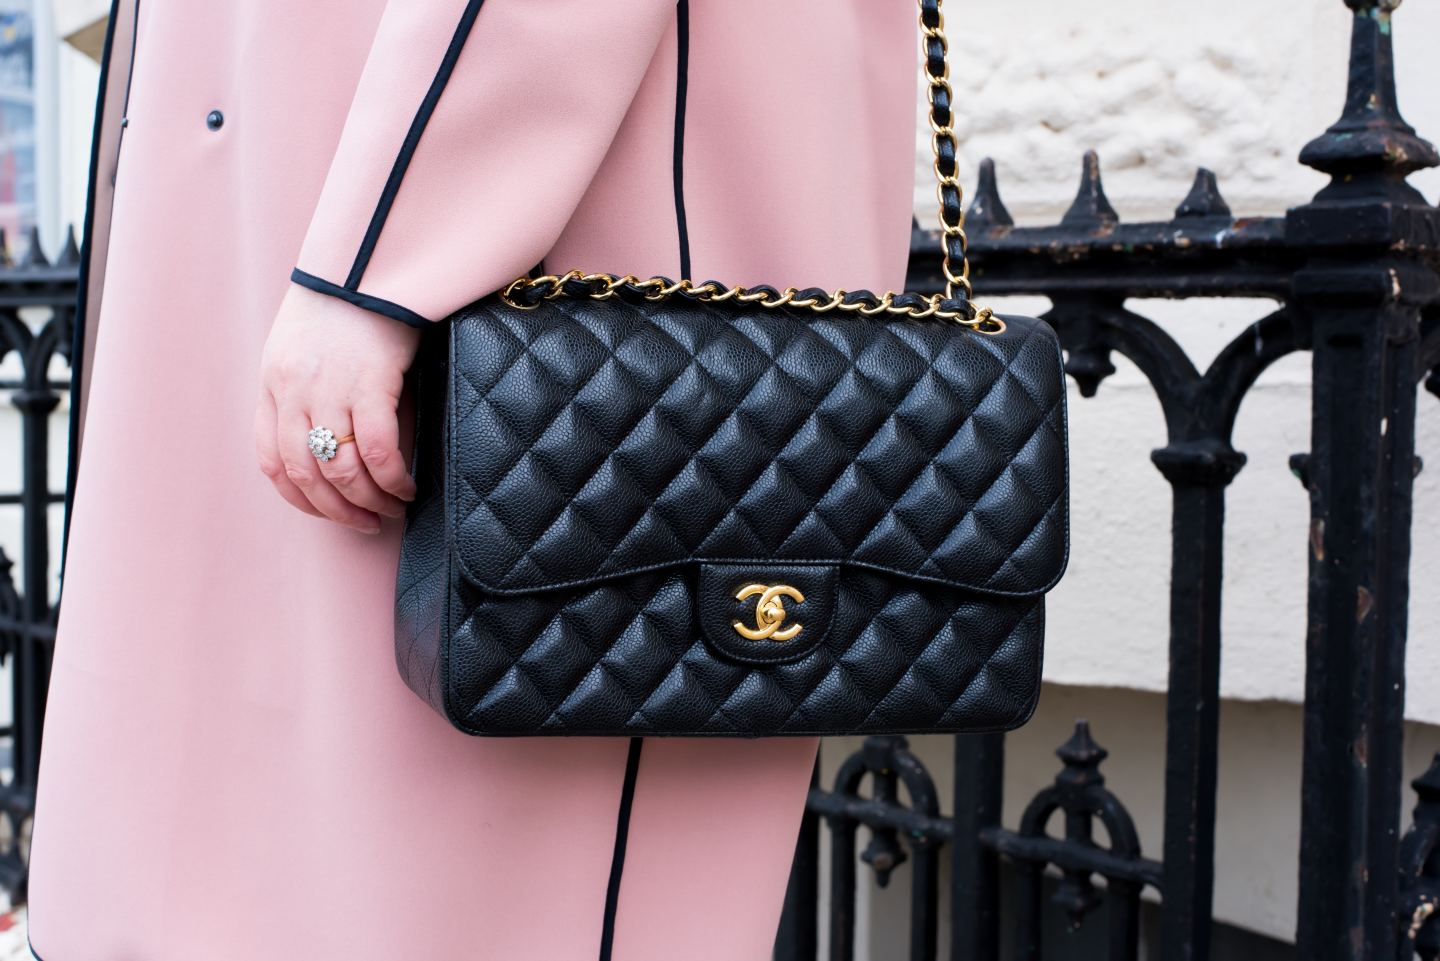 What Fits In A Chanel Jumbo Bag? shoulder bag